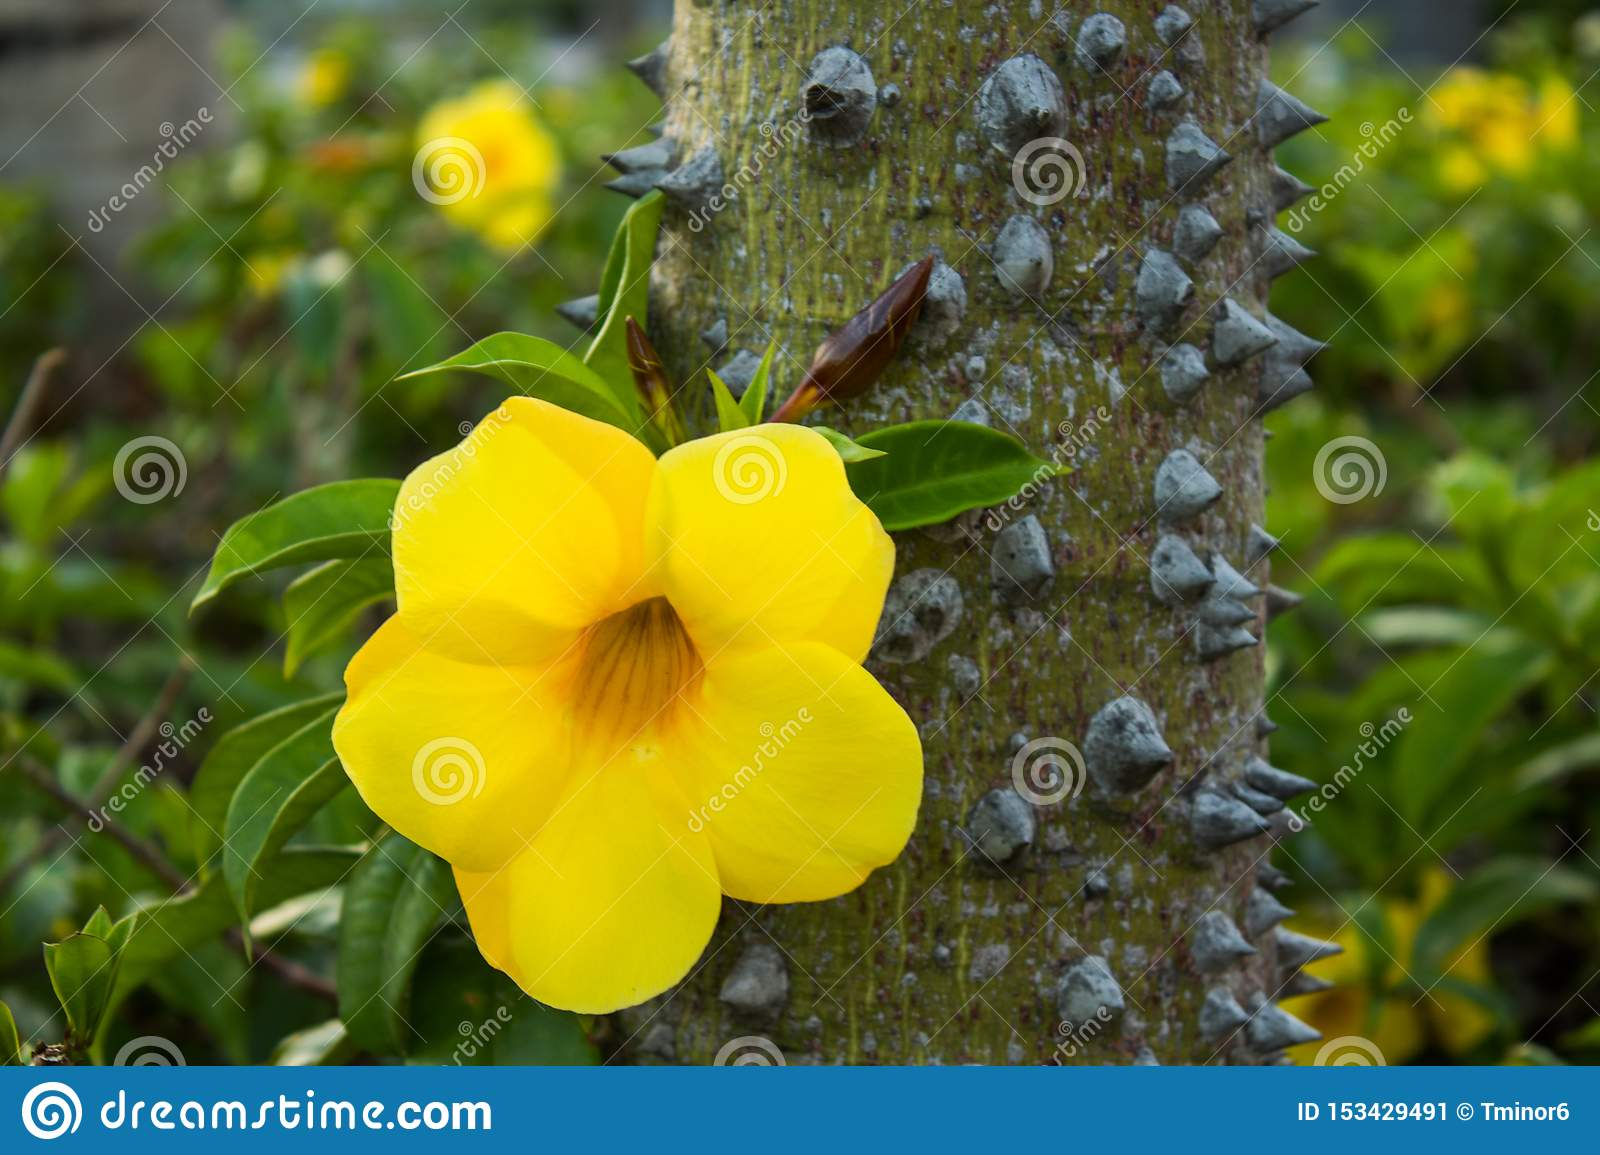 Yellow flower on a tree with thorns.